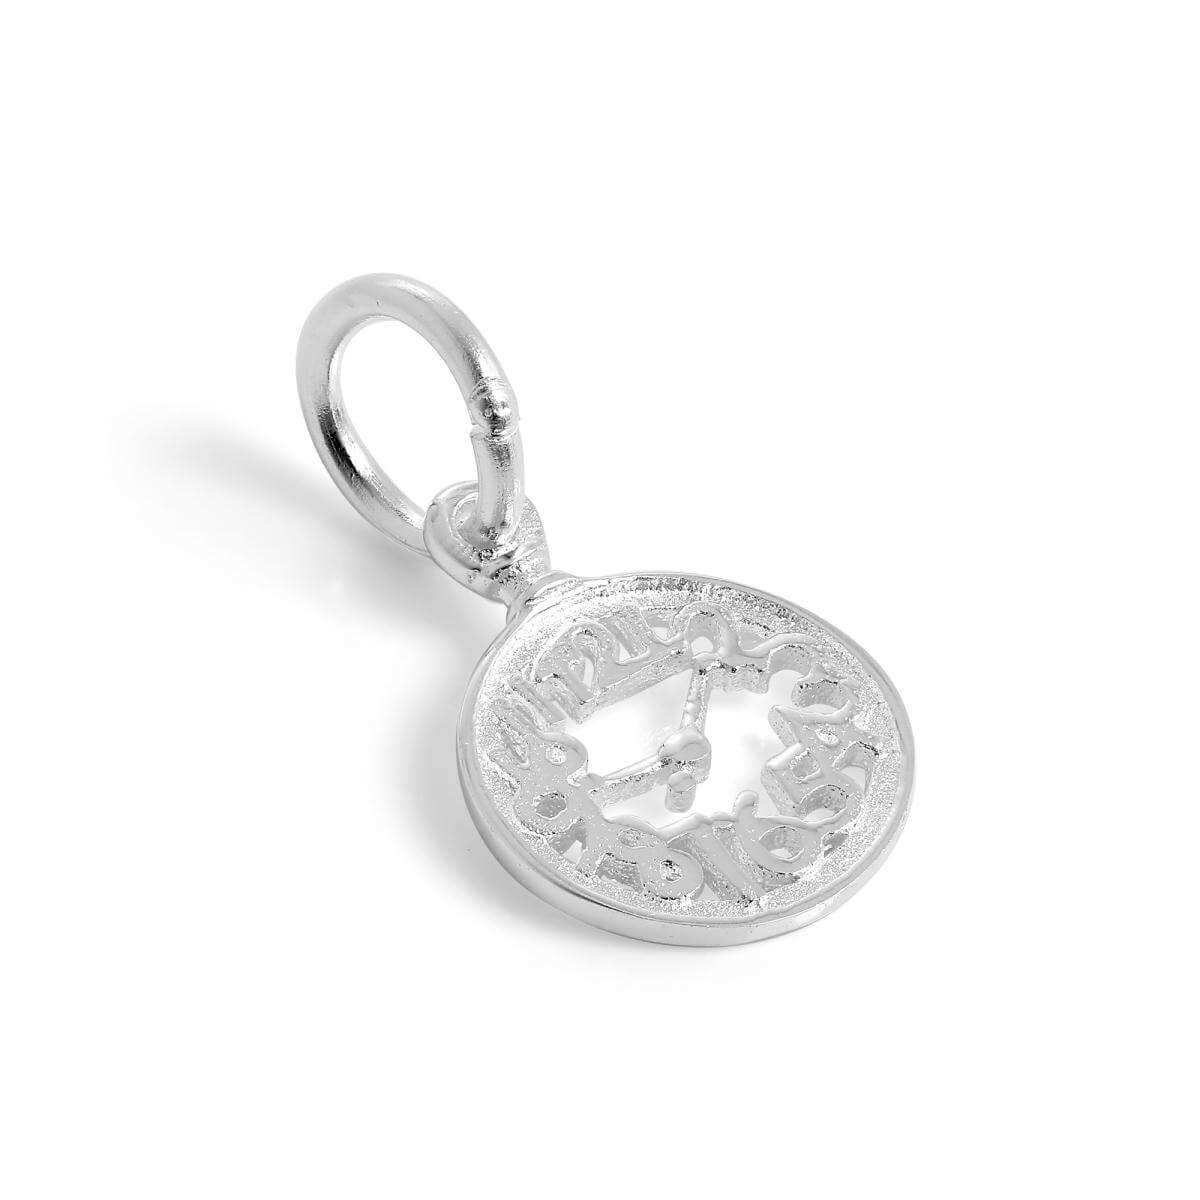 Small Sterling Silver Alice in Wonderland Clock Face Charm